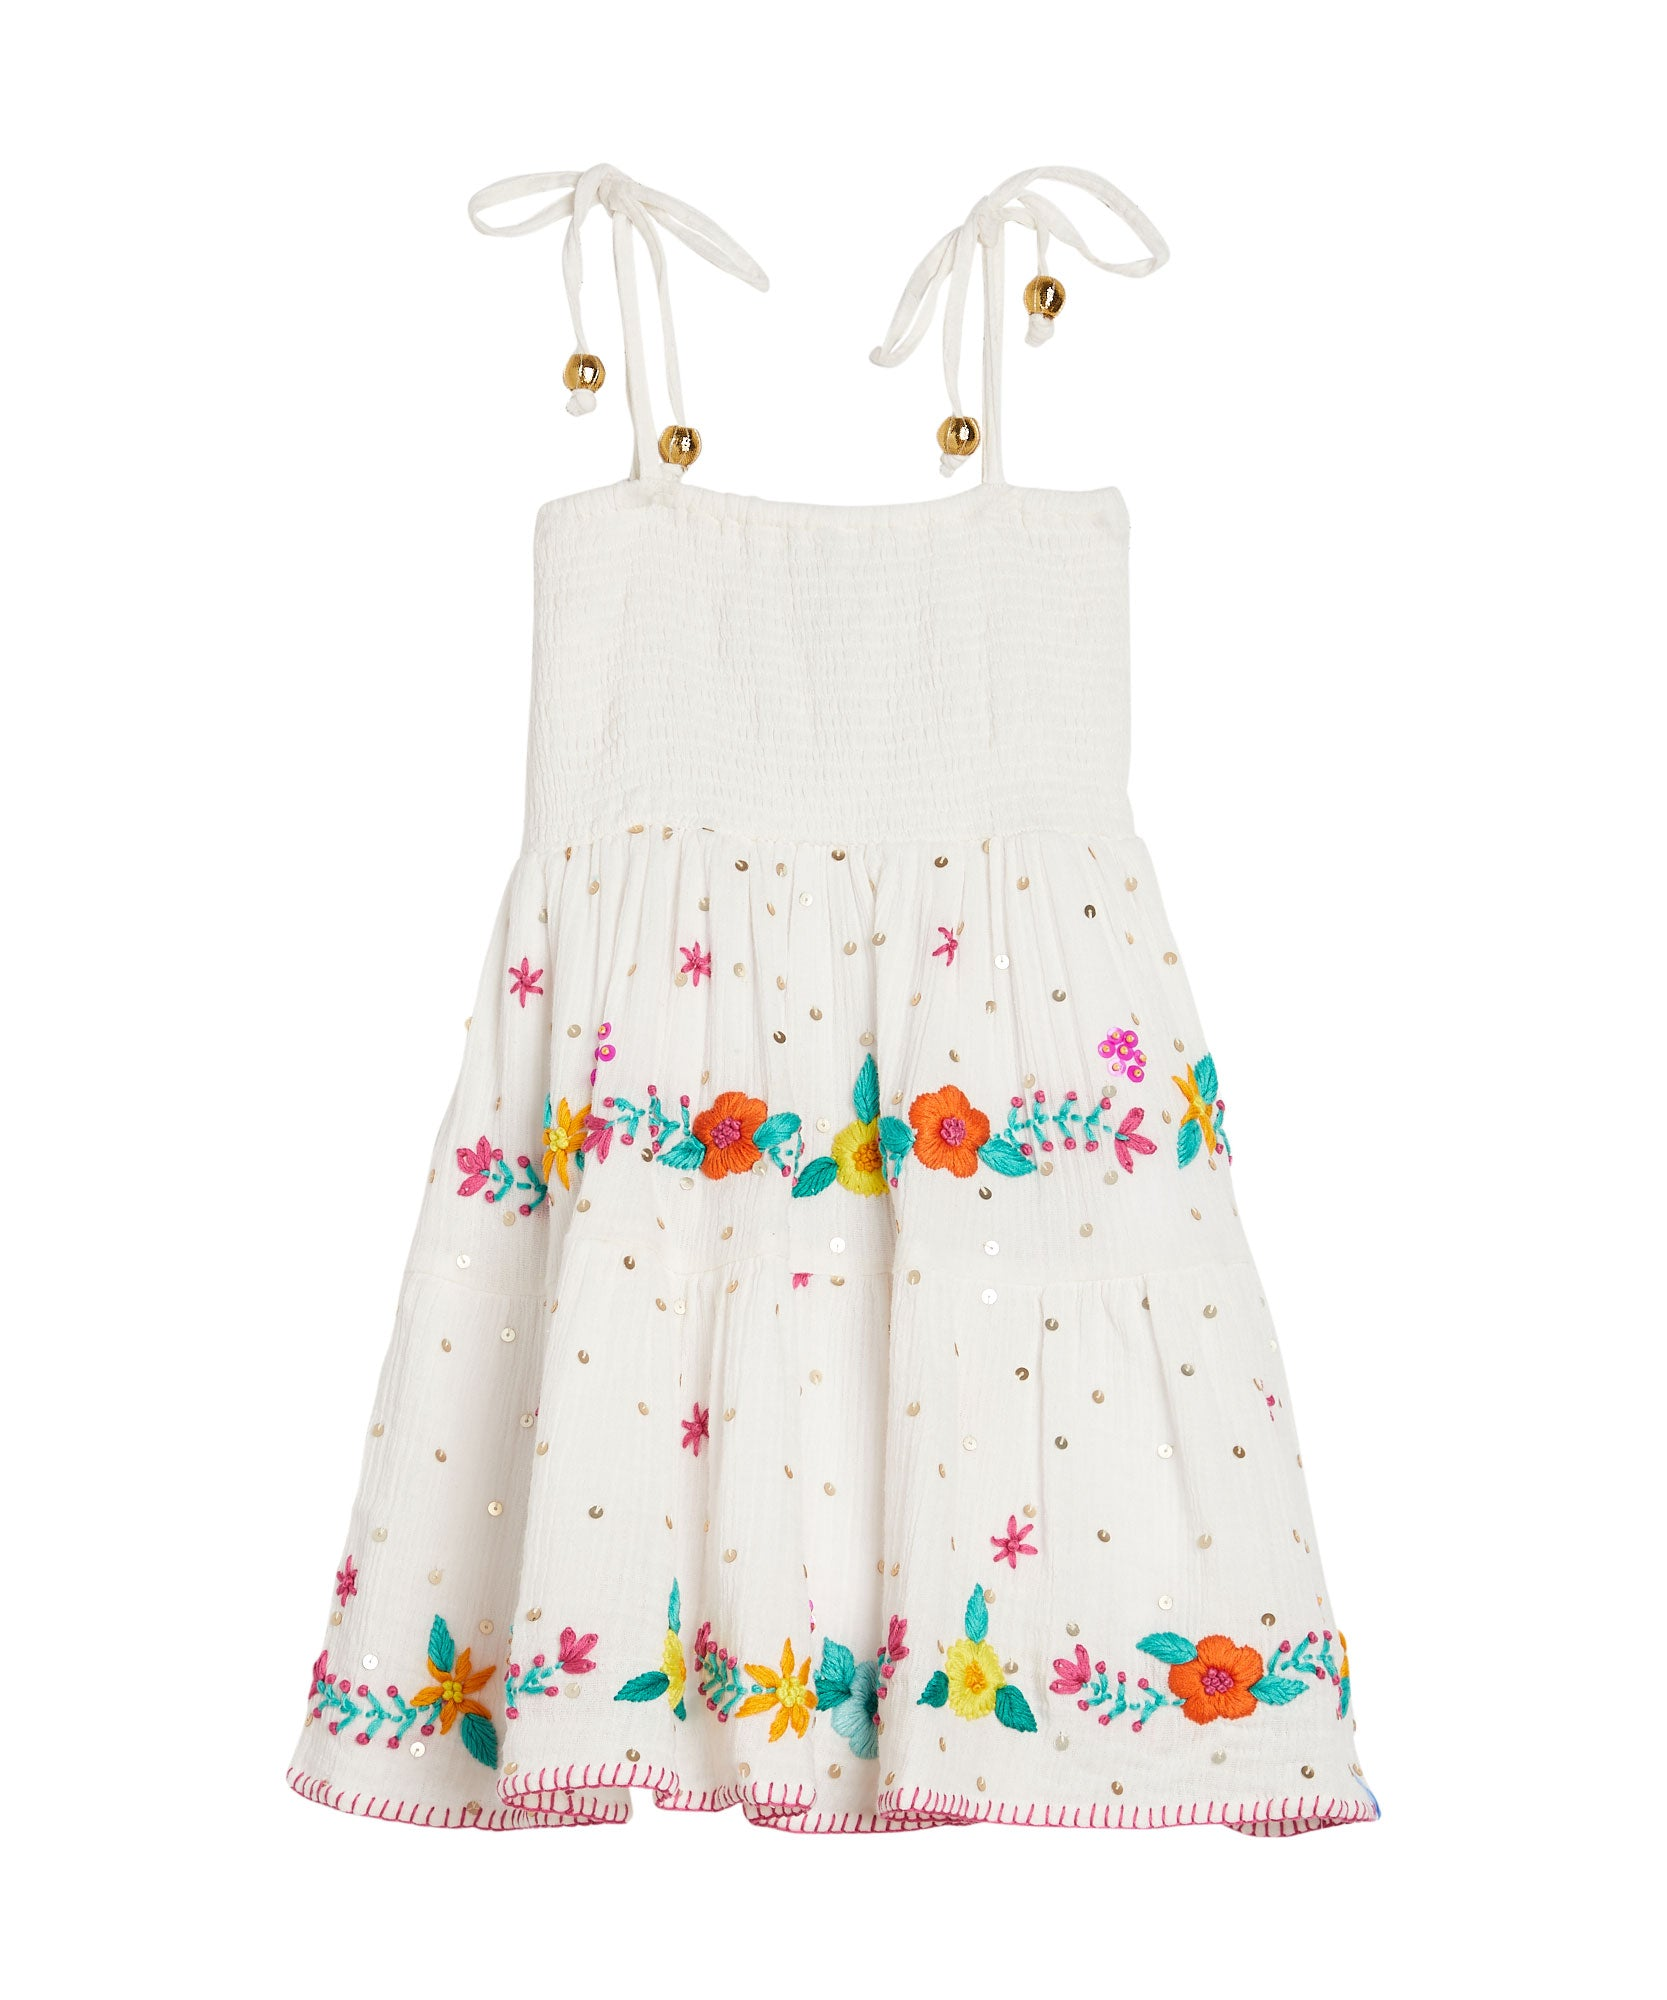 Embroidered Smocked Dress